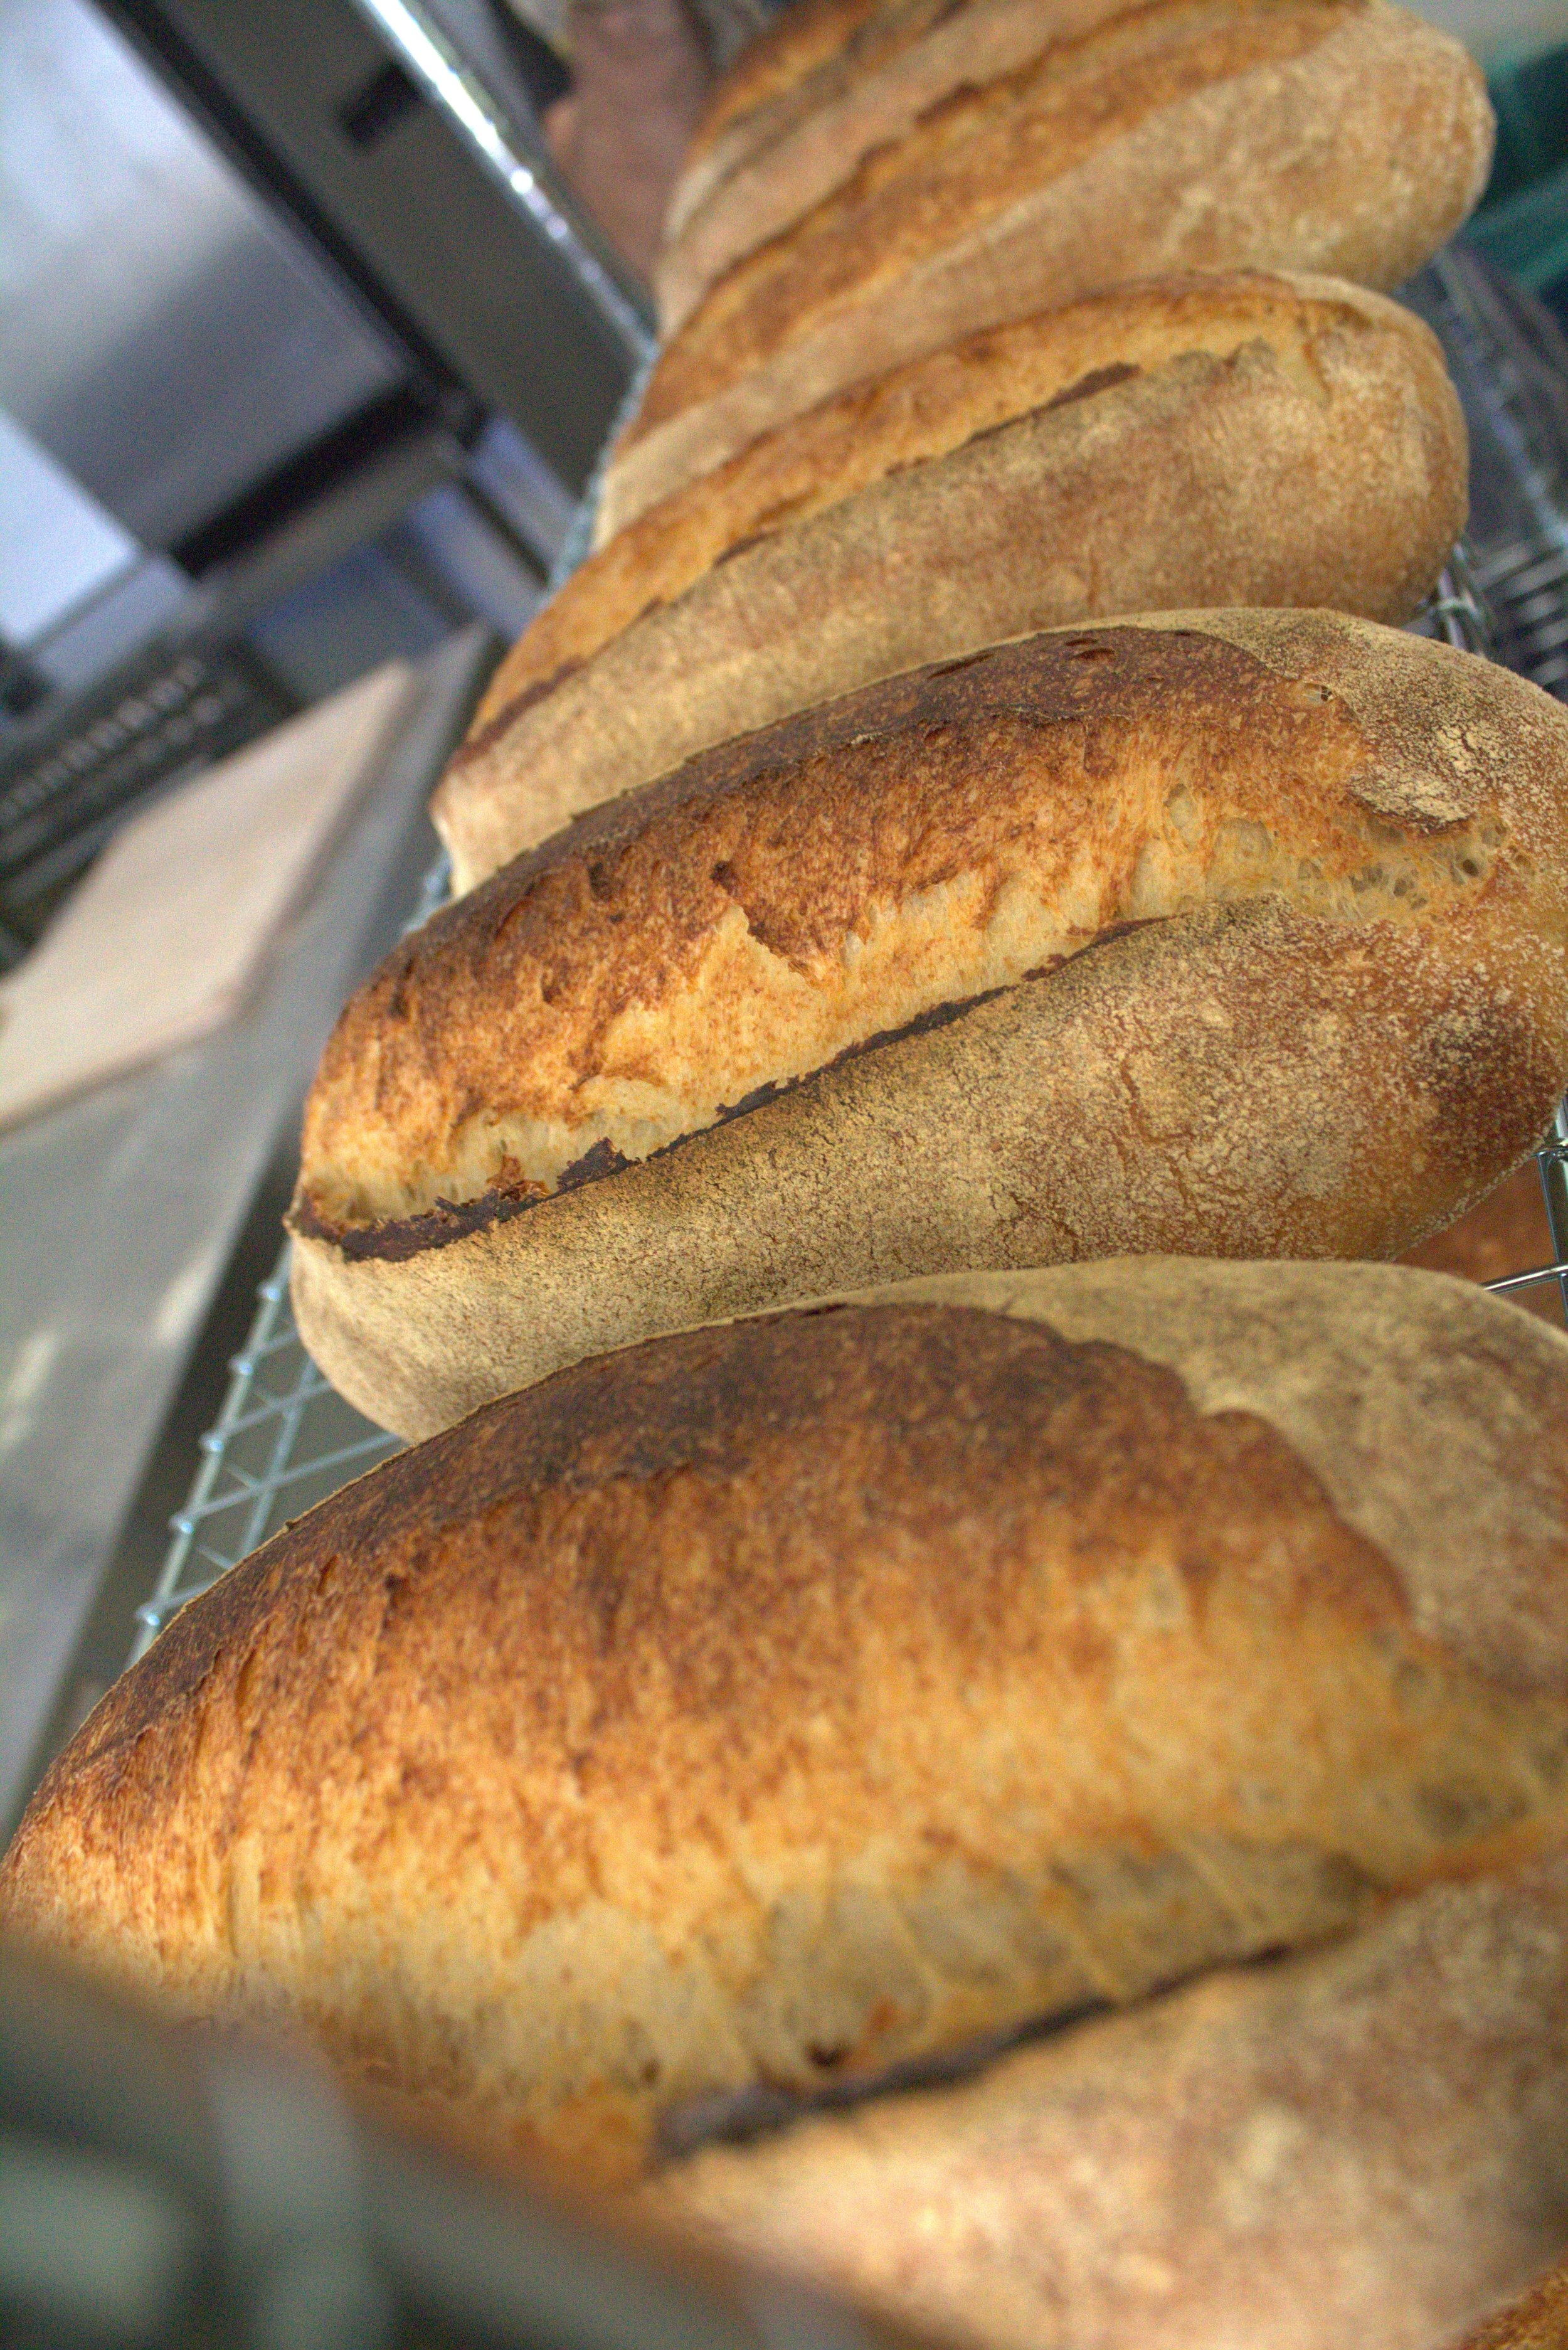 Real bread, made local -